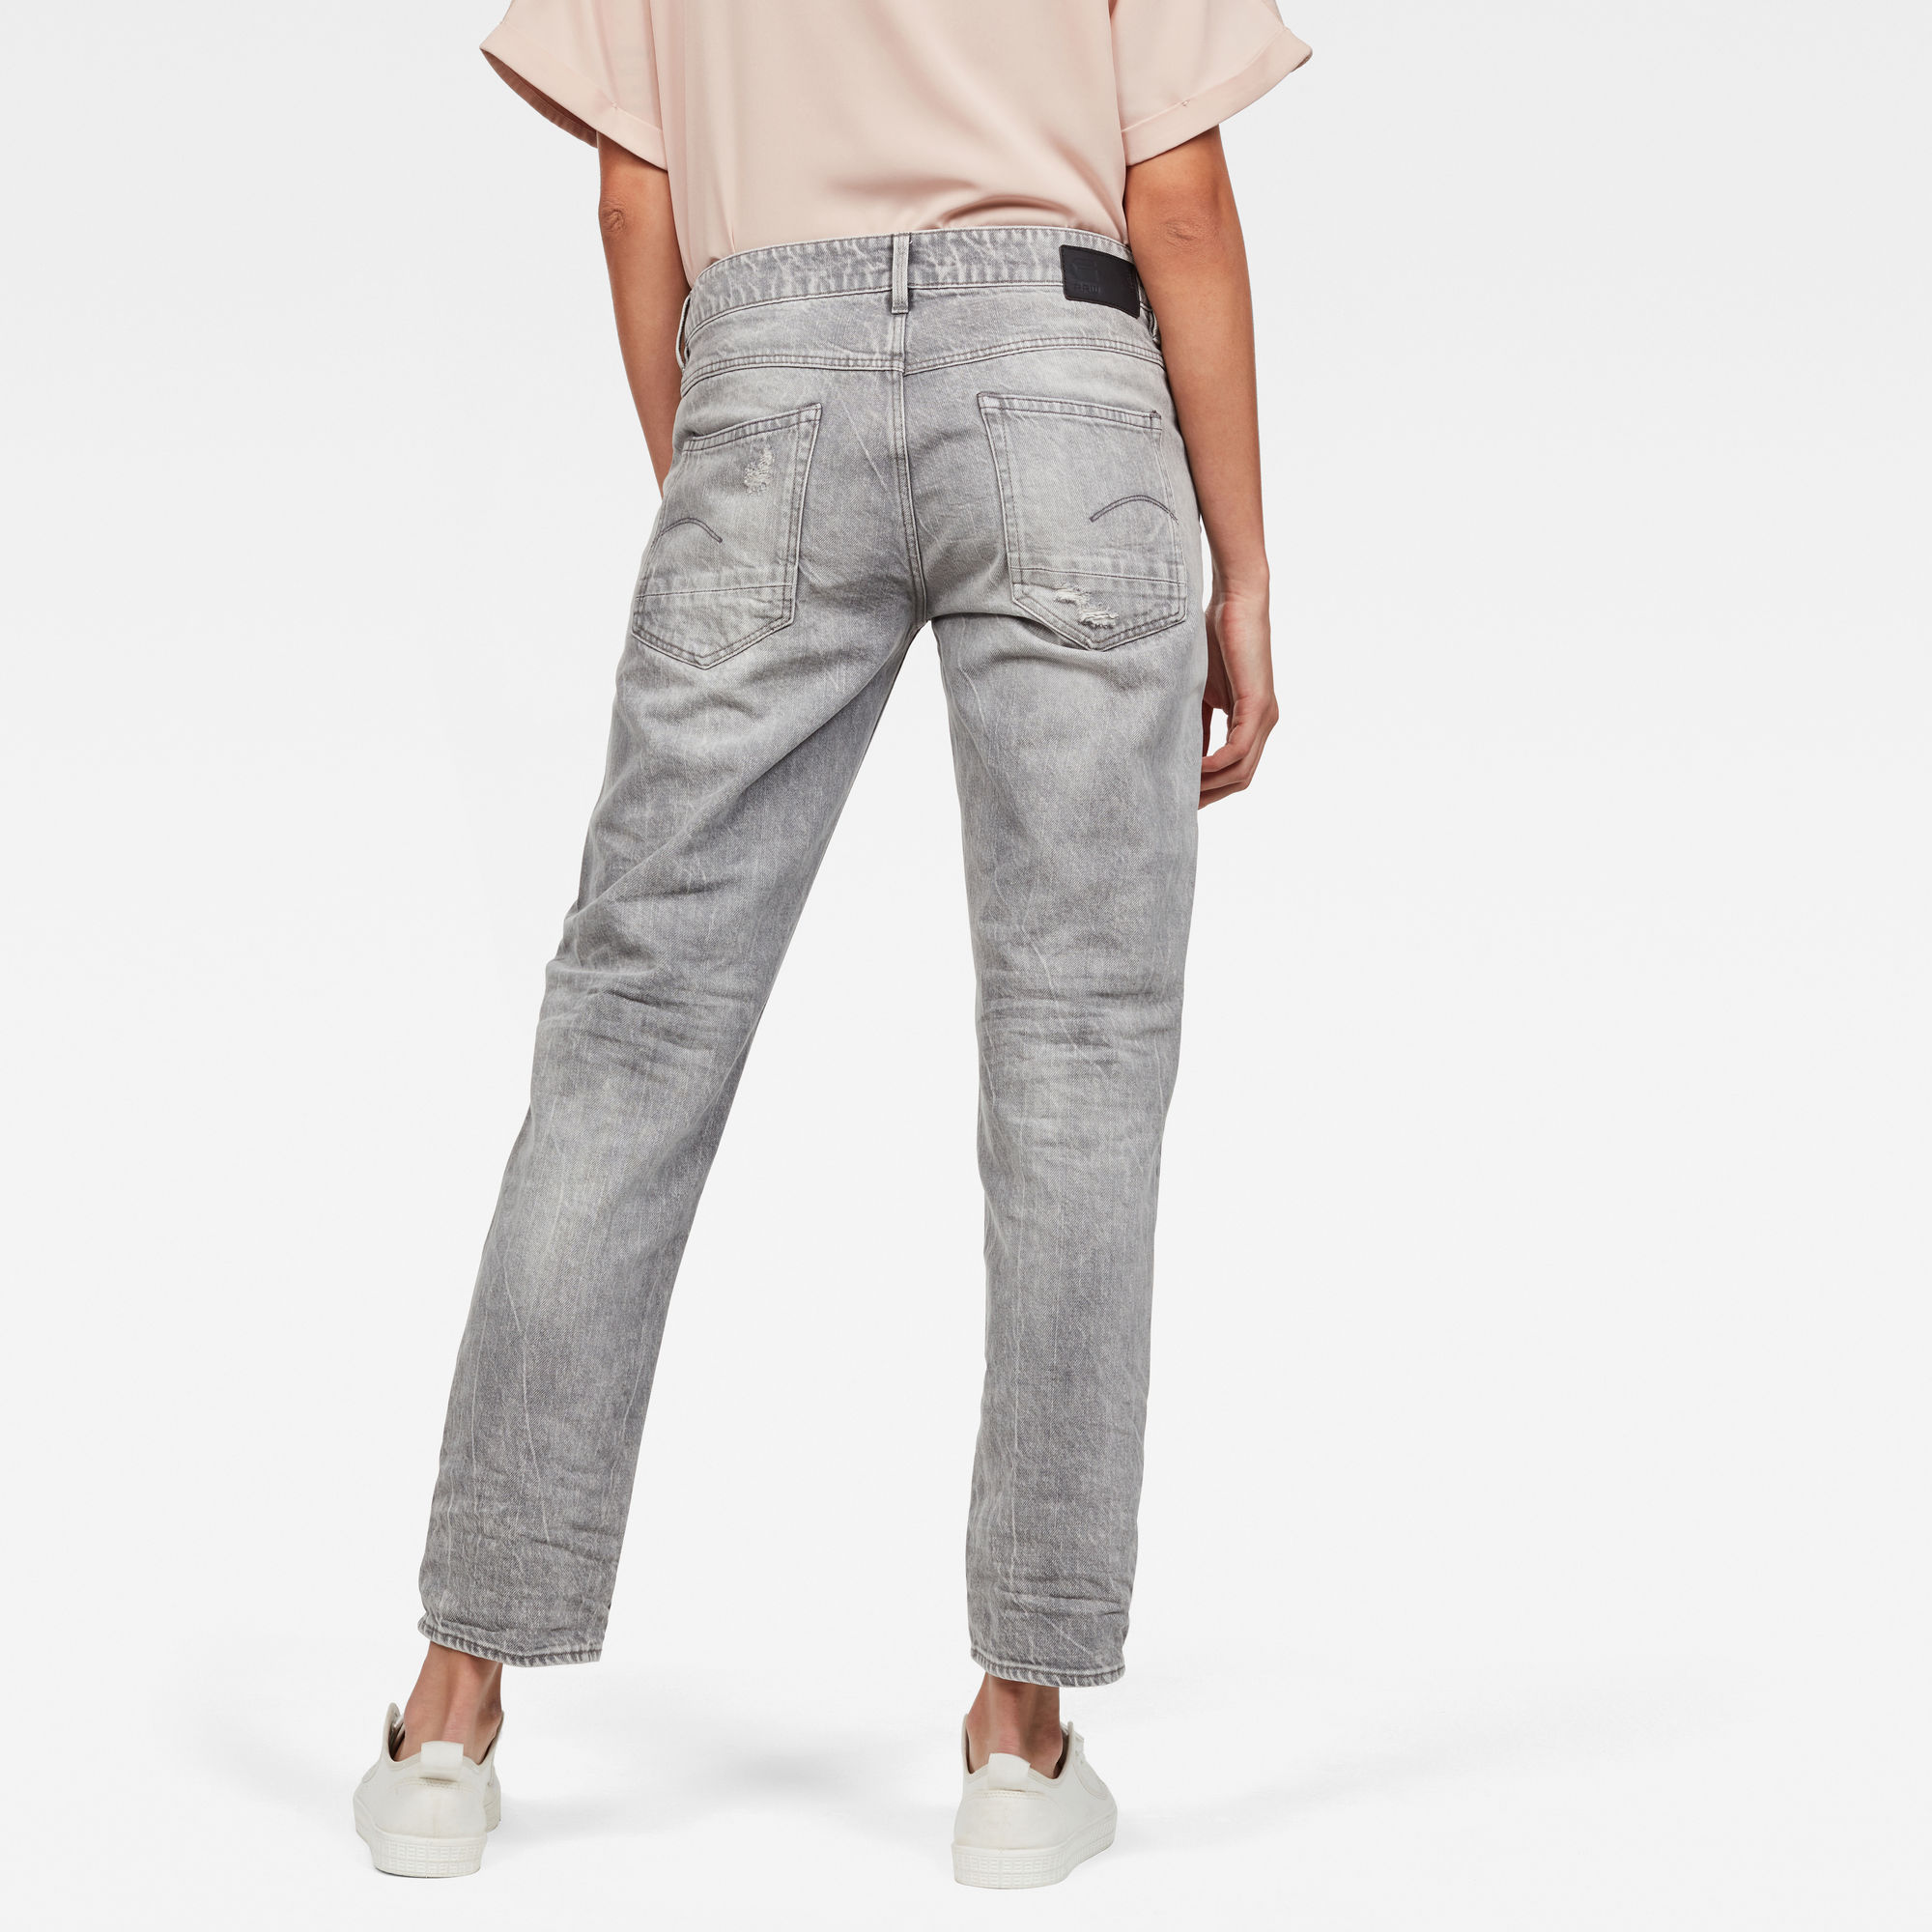 G-Star RAW Kate Boyfriend Jeans